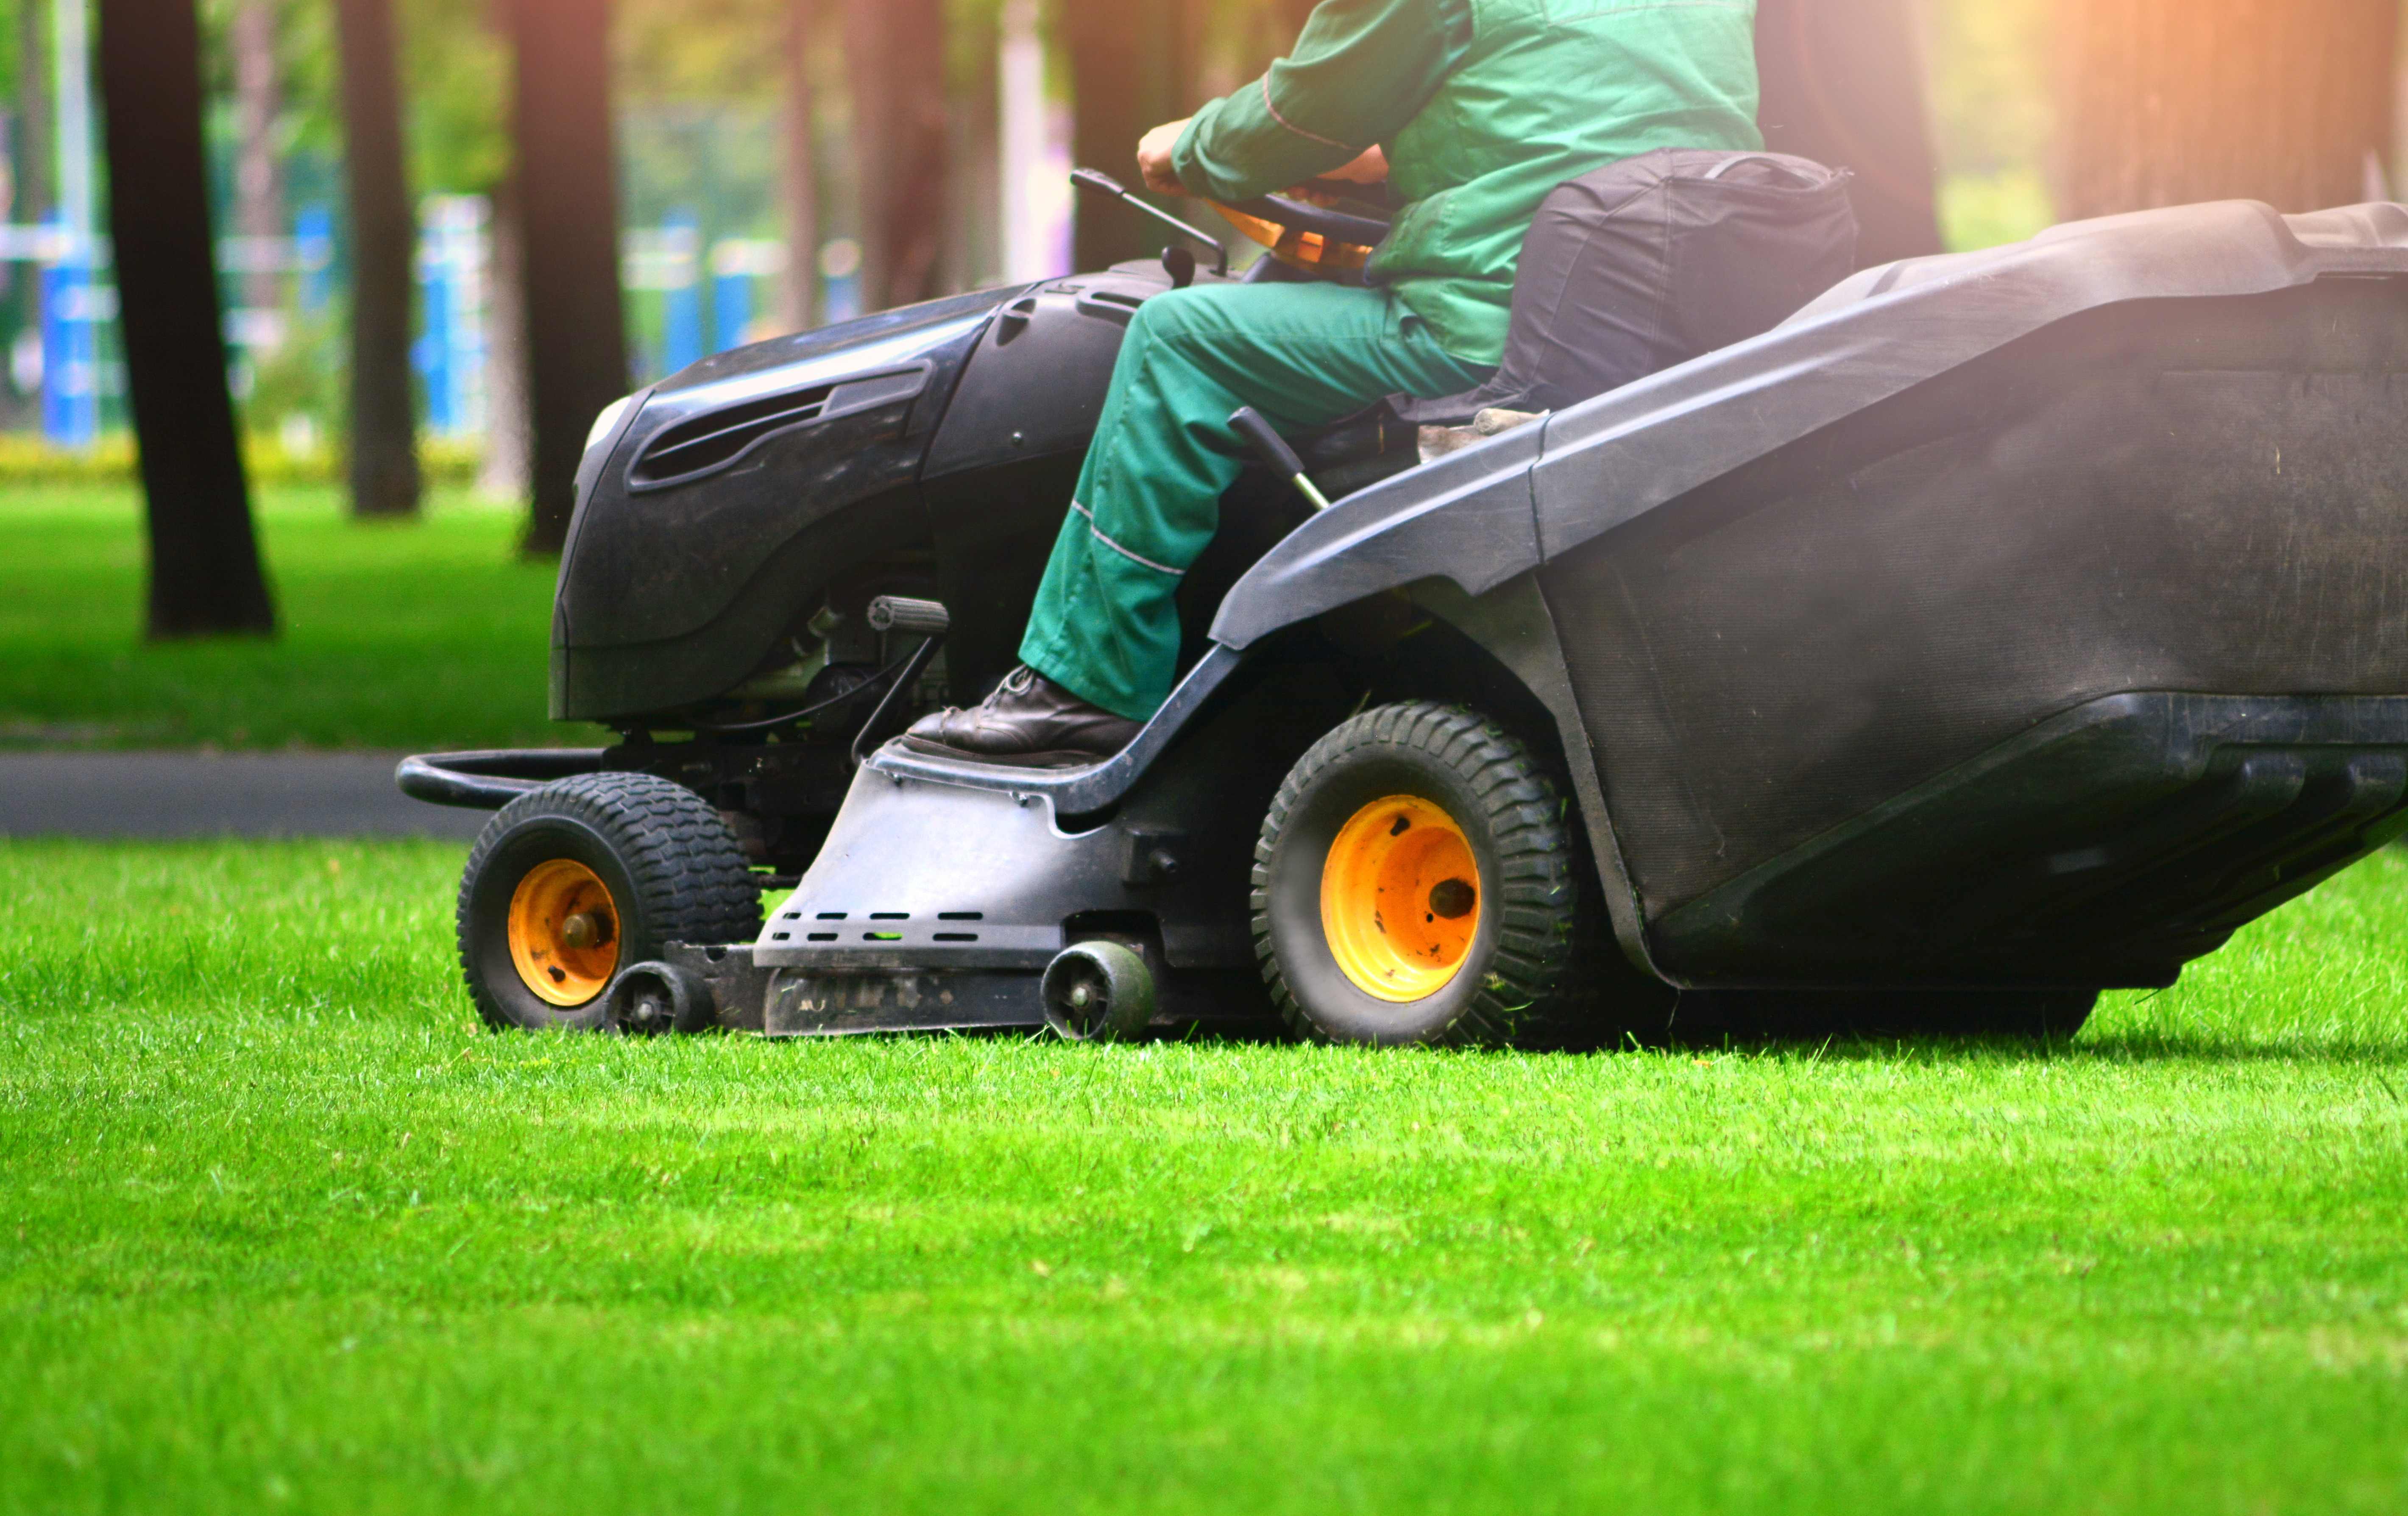 Ride-on Lawn Mower Service